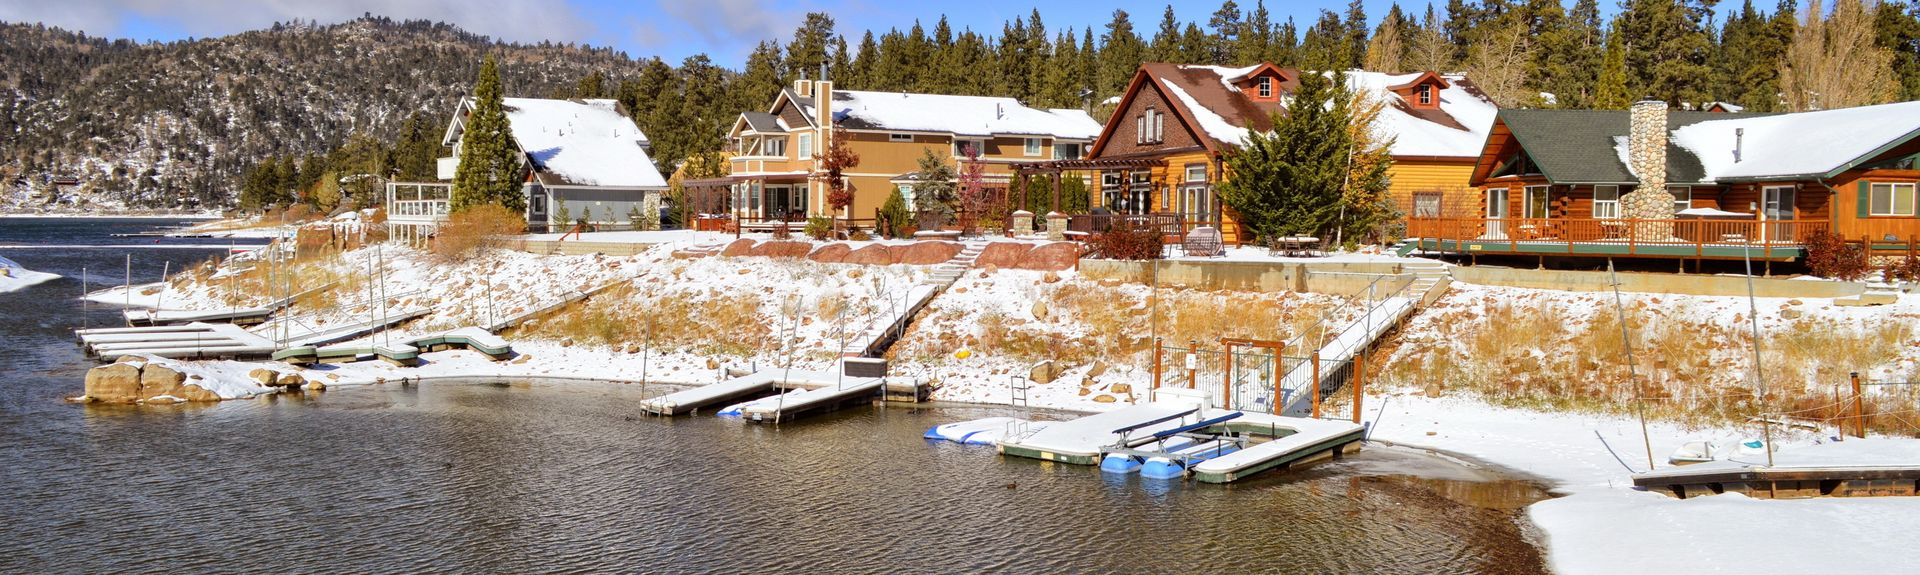 Big Bear City, Big Bear, California, United States of America